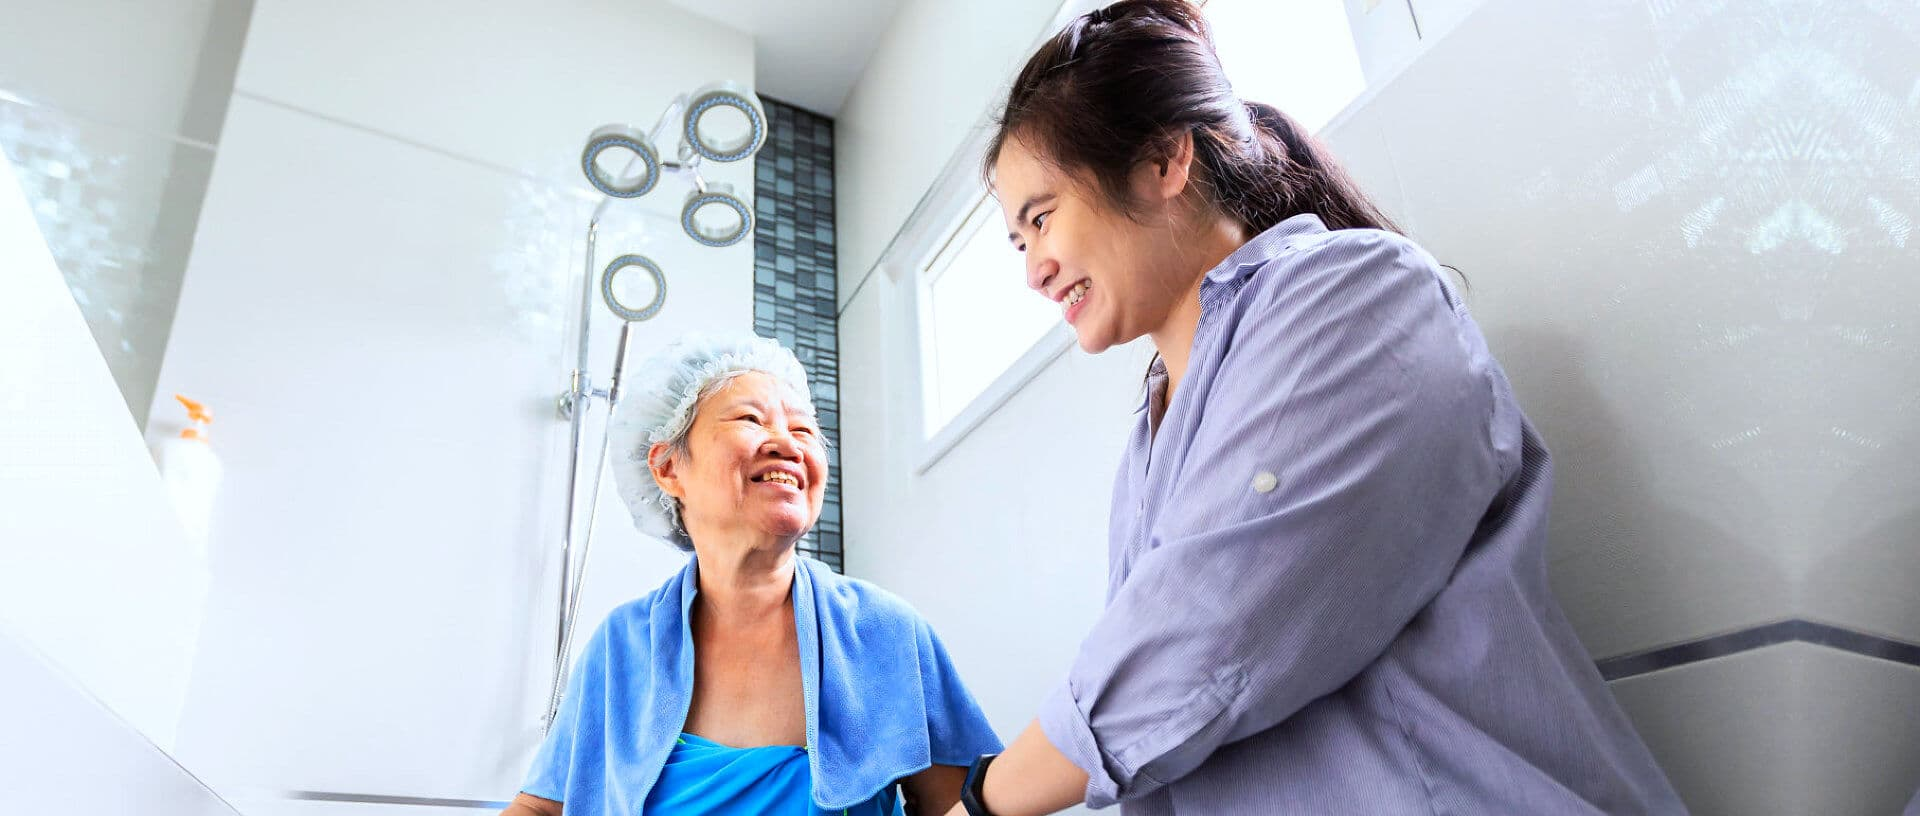 caregiver assisting to senior woman and gave a clean towel